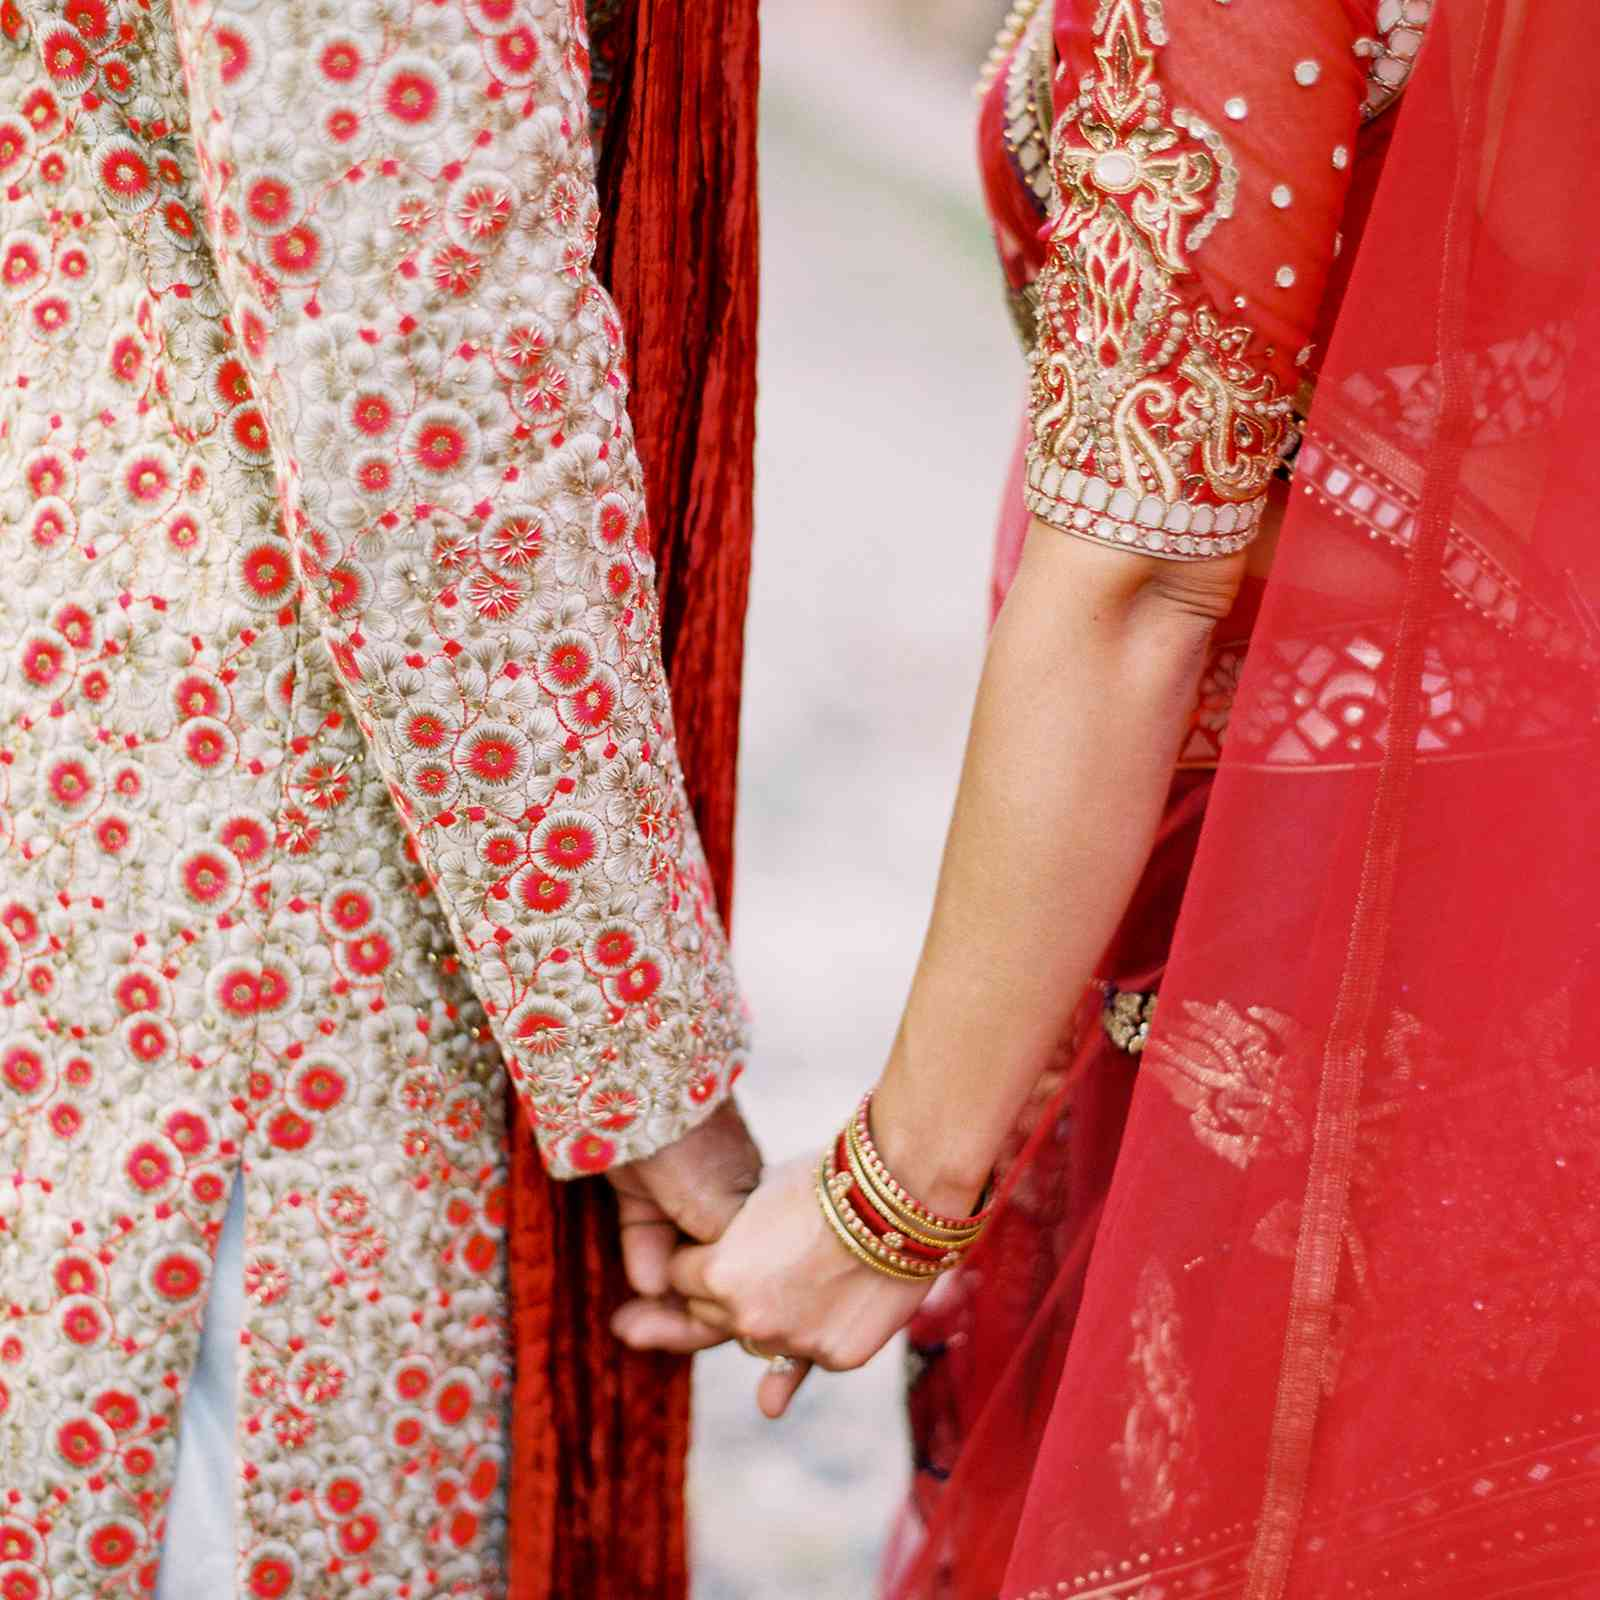 Bride and groom holding hands in traditional Indian attire